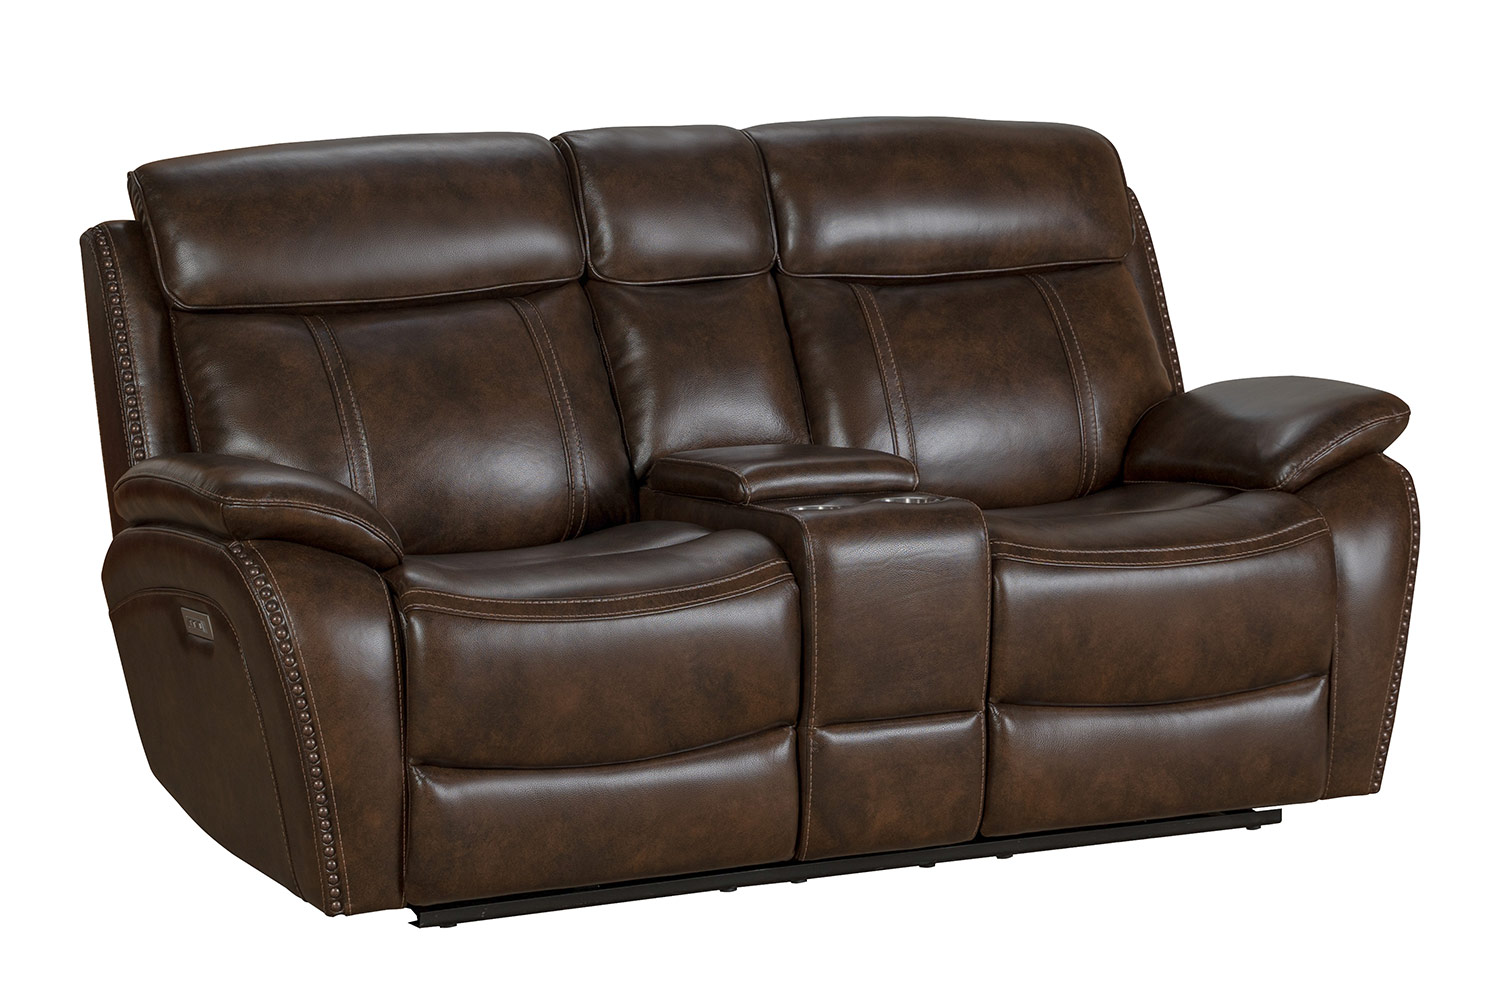 Barcalounger Sandover Power Reclining Console Loveseat with Power Head Rests and Lumbar - Tri-Tone Chocolate/Leather match